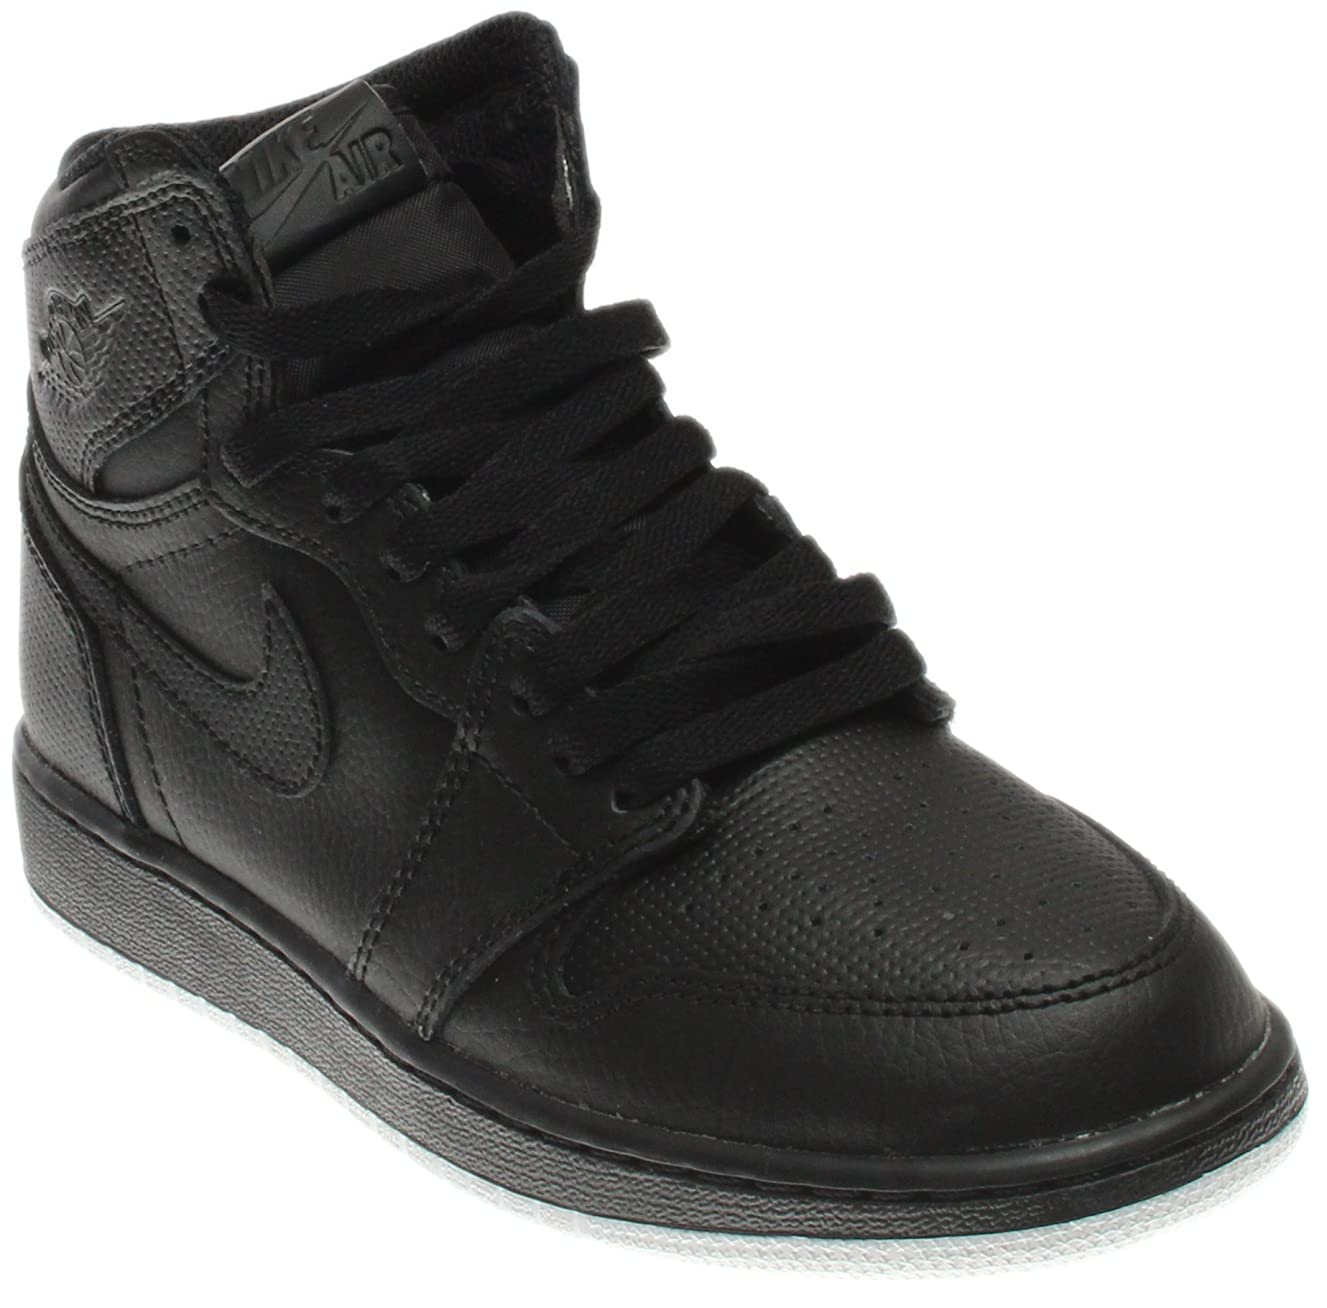 Nike Air Jordan 1 Retro High Og Bg Black Boys/Girls